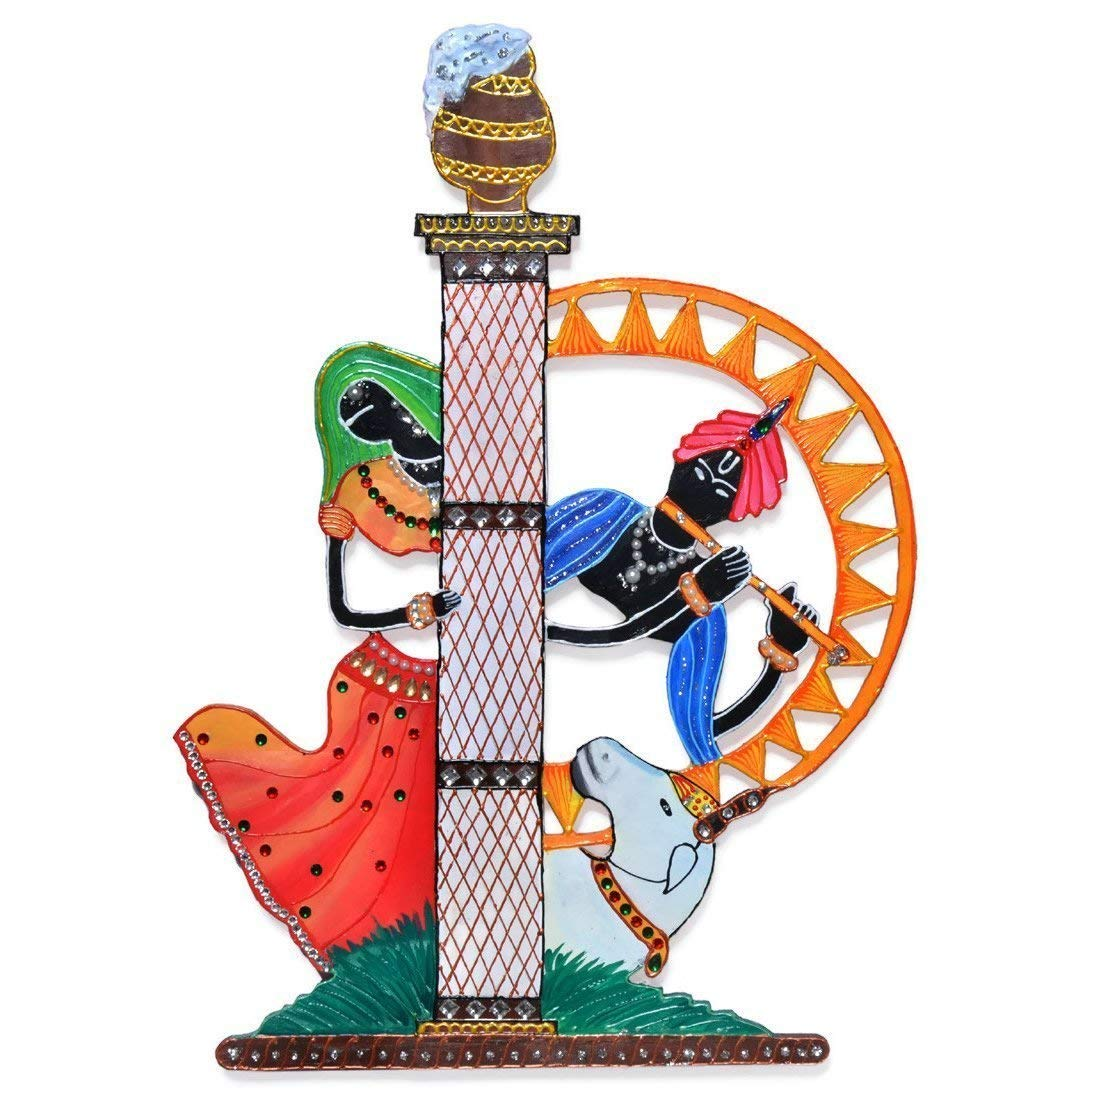 Wall Decor Art Hanging of Radhe Shyam - Radha Krishna - Handcrafted Eco Friendly Wooden Hand Painted Hand Decorated in India